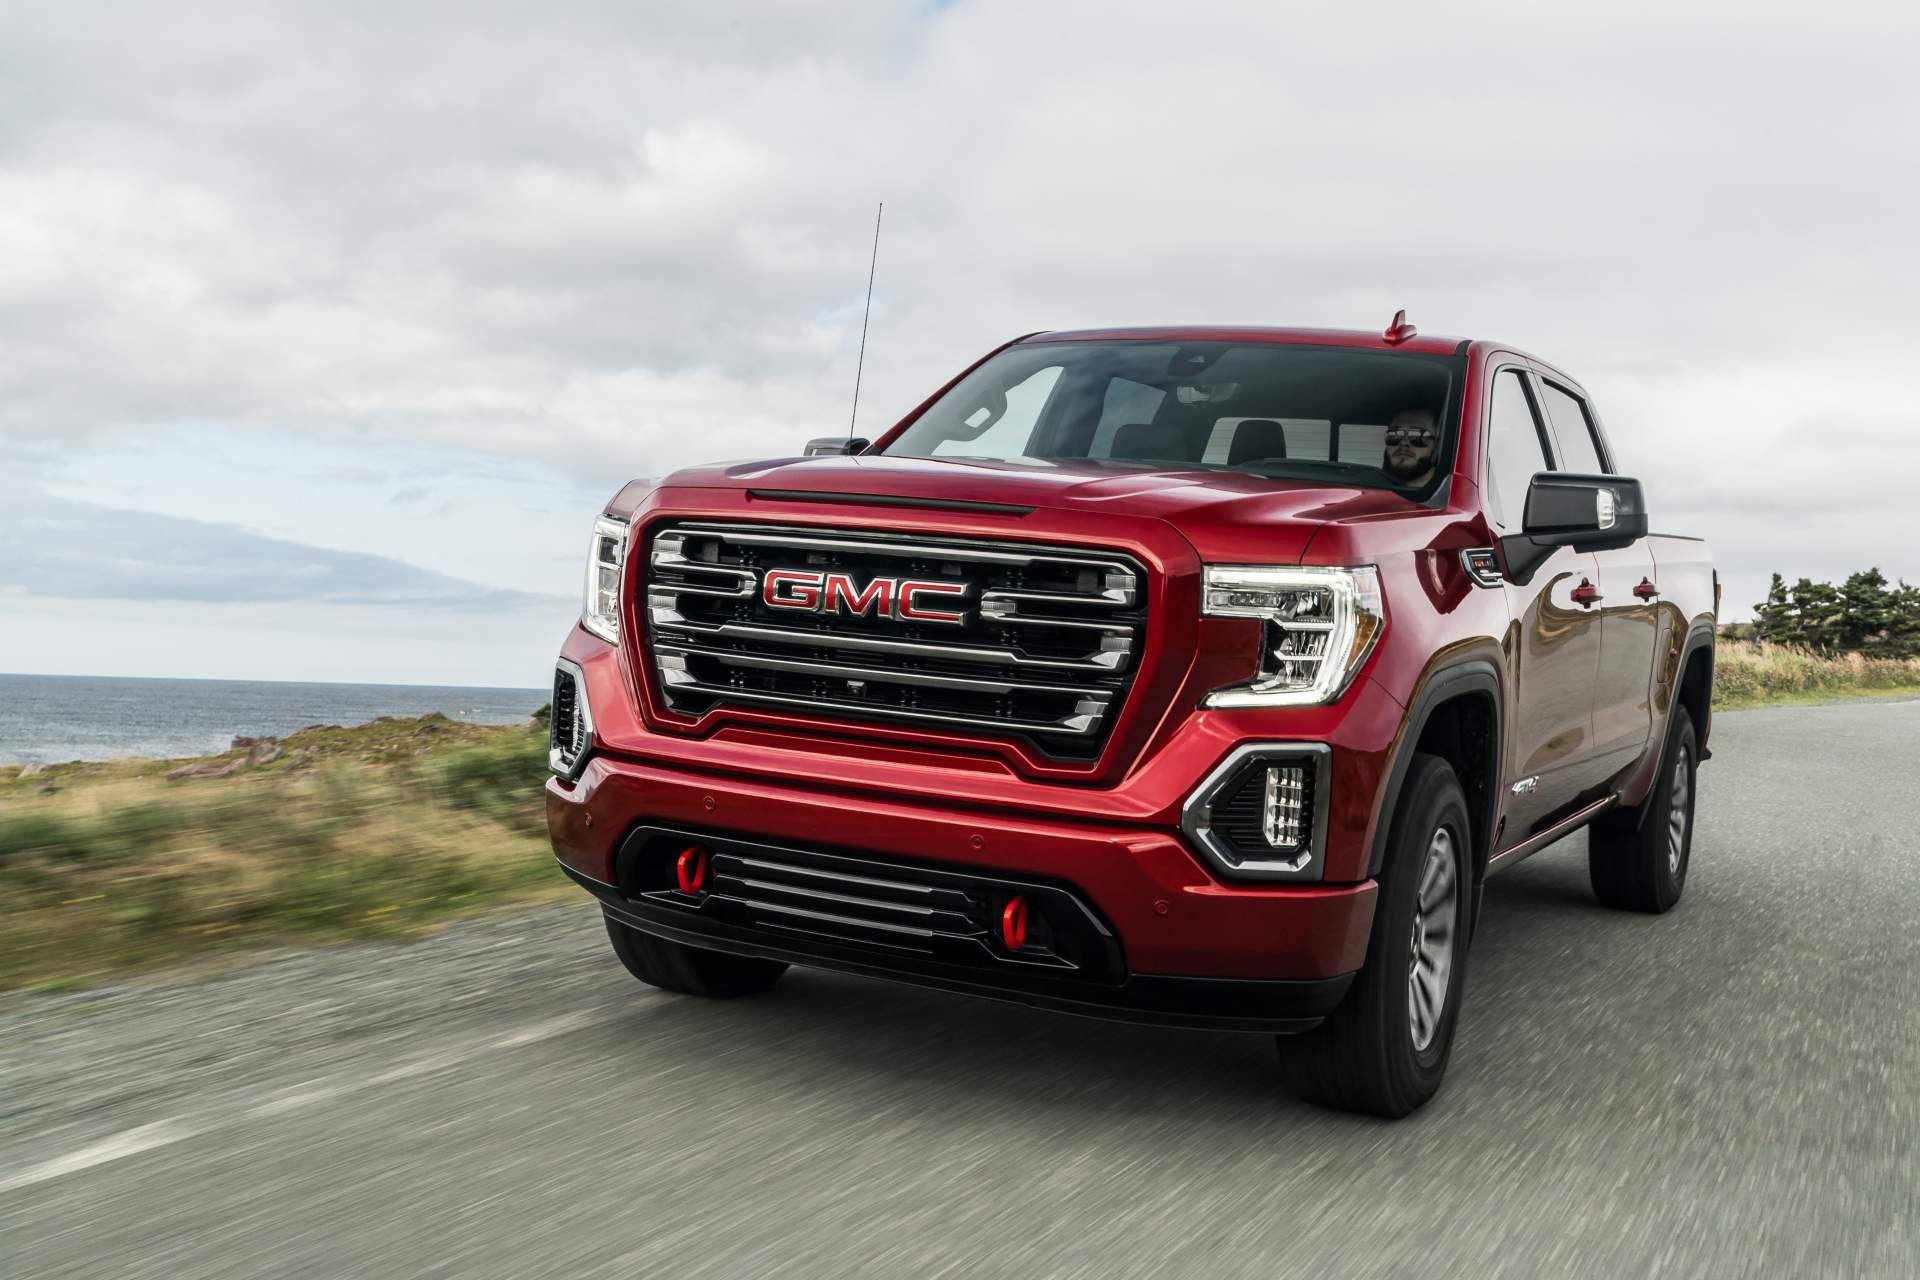 2019 Gmc Sierra At4 Off Road Performance Package Gains 435hp 6 2l